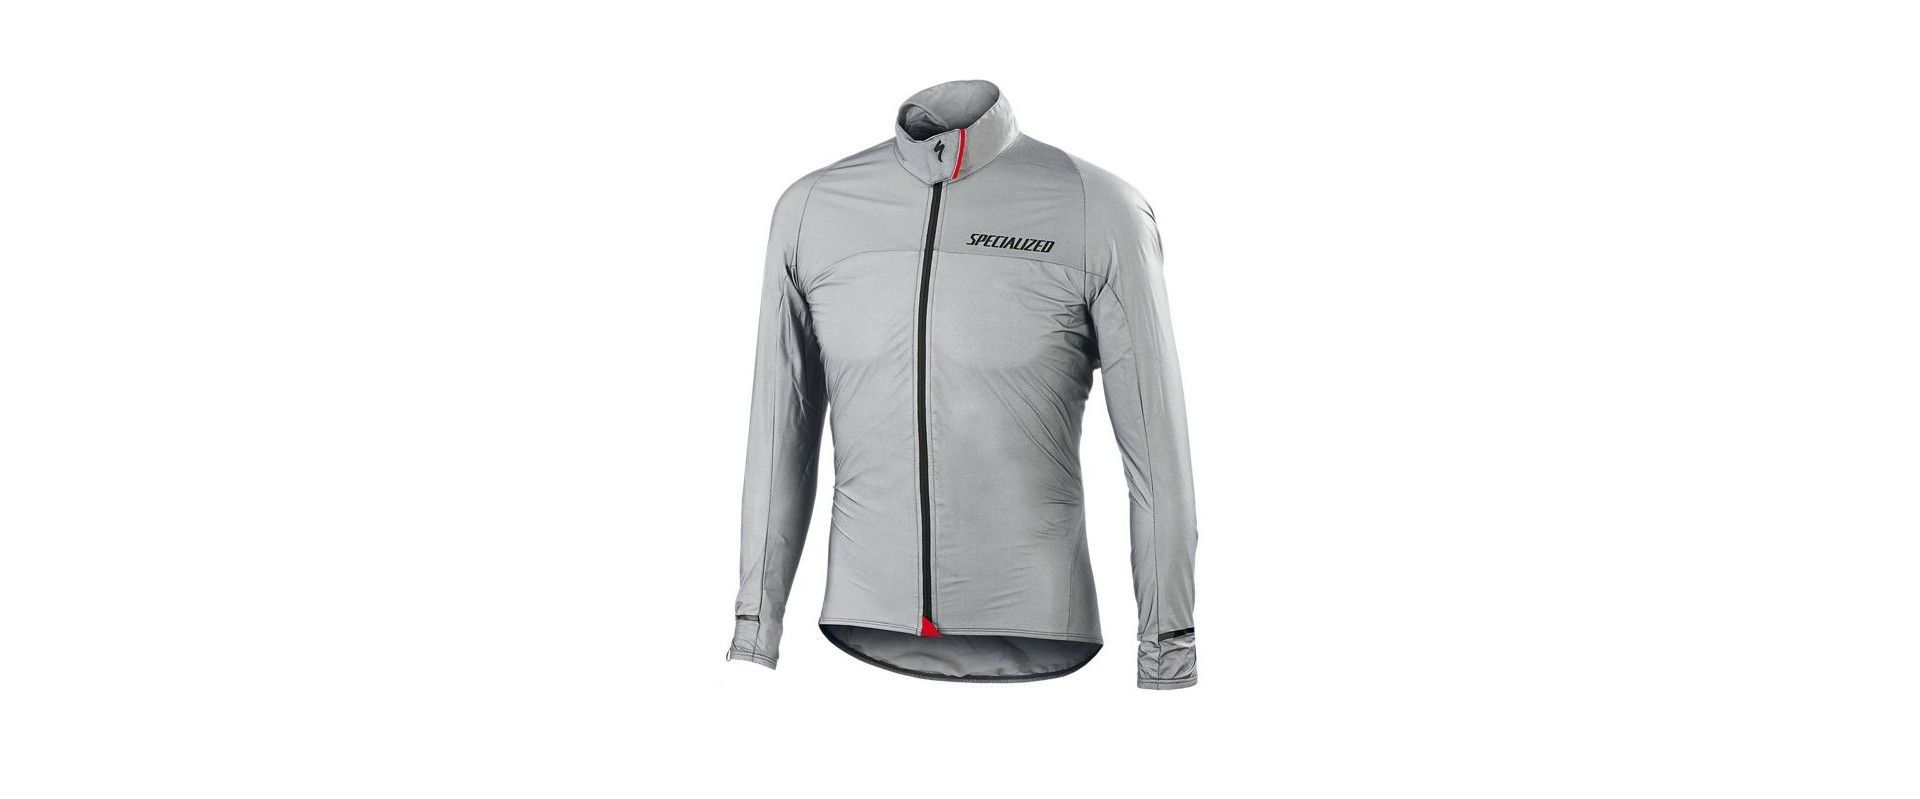 ♥ Cycling Jersey ♥ Specialized Concept Store Bicycle Store and Components